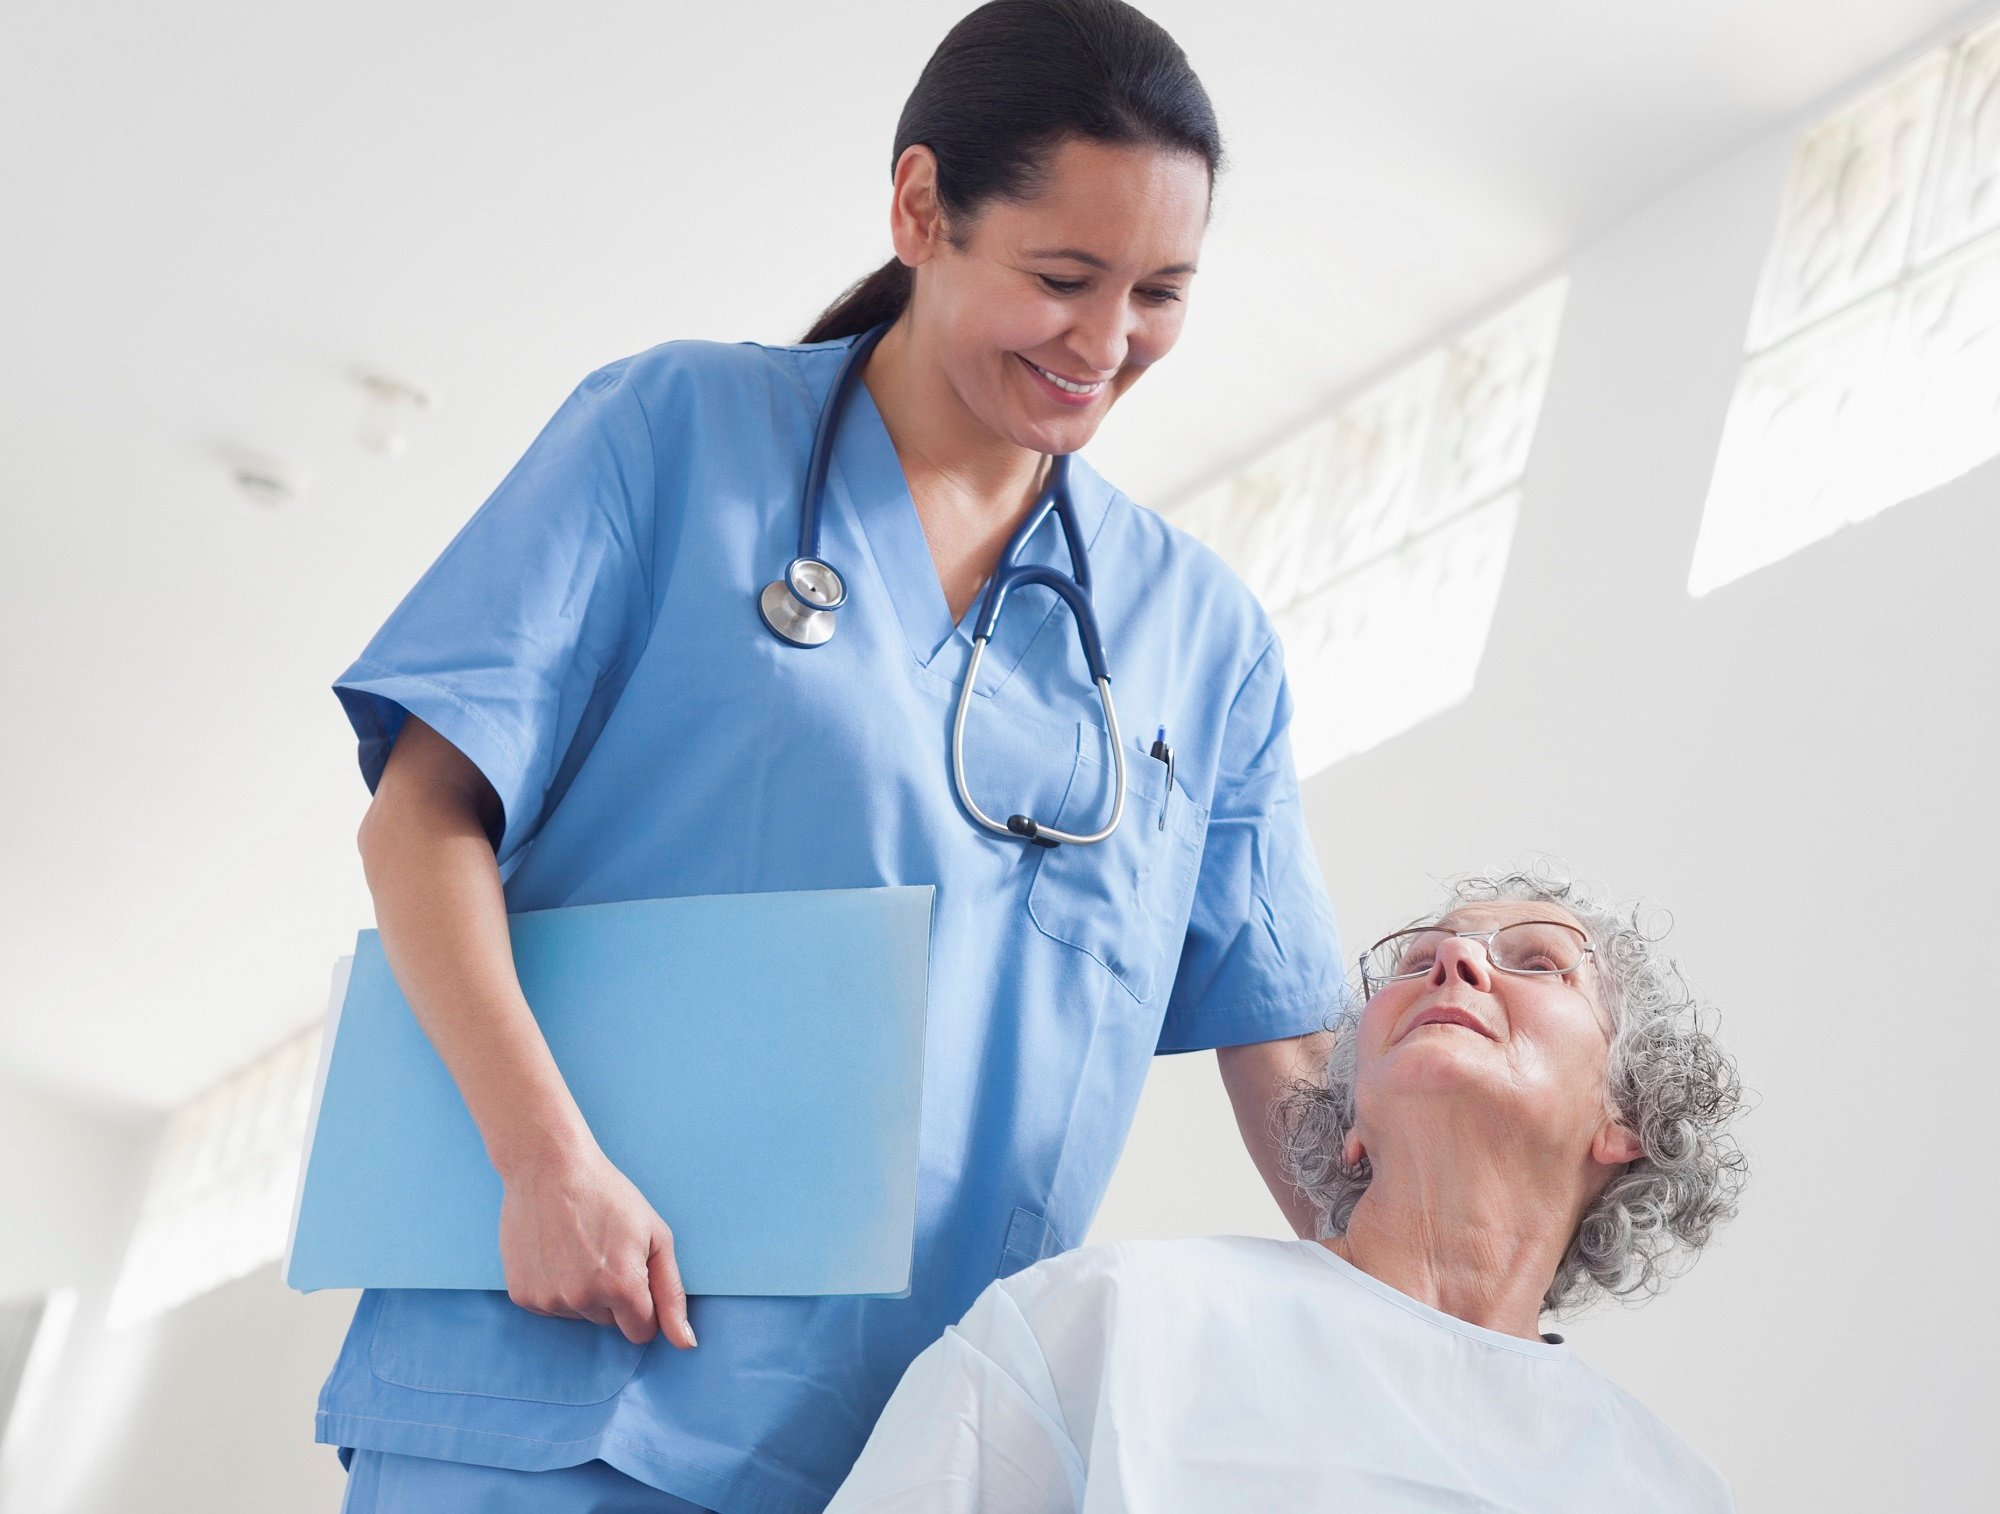 hospitals patient and staff members The joint commission just released new safety guidelines that can help hospitals survive and thrive by bolstering their safety culture.